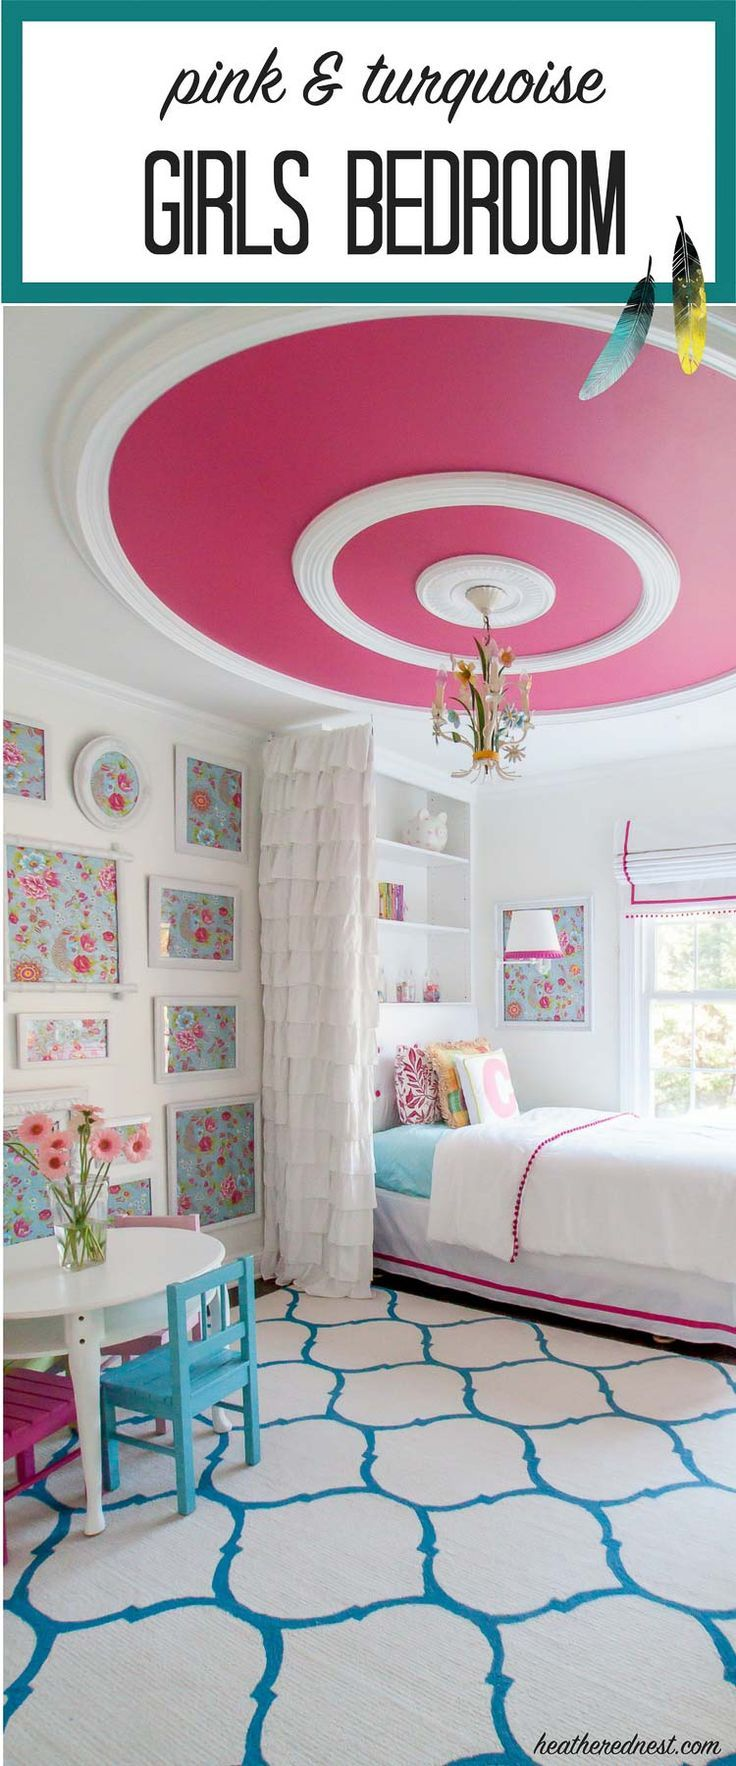 Ideas and inspiration for kids decorating with stuva petit amp small - Gorgeous Turquoise And Pink Bedroom Reveal From Http Heatherednest Com Love